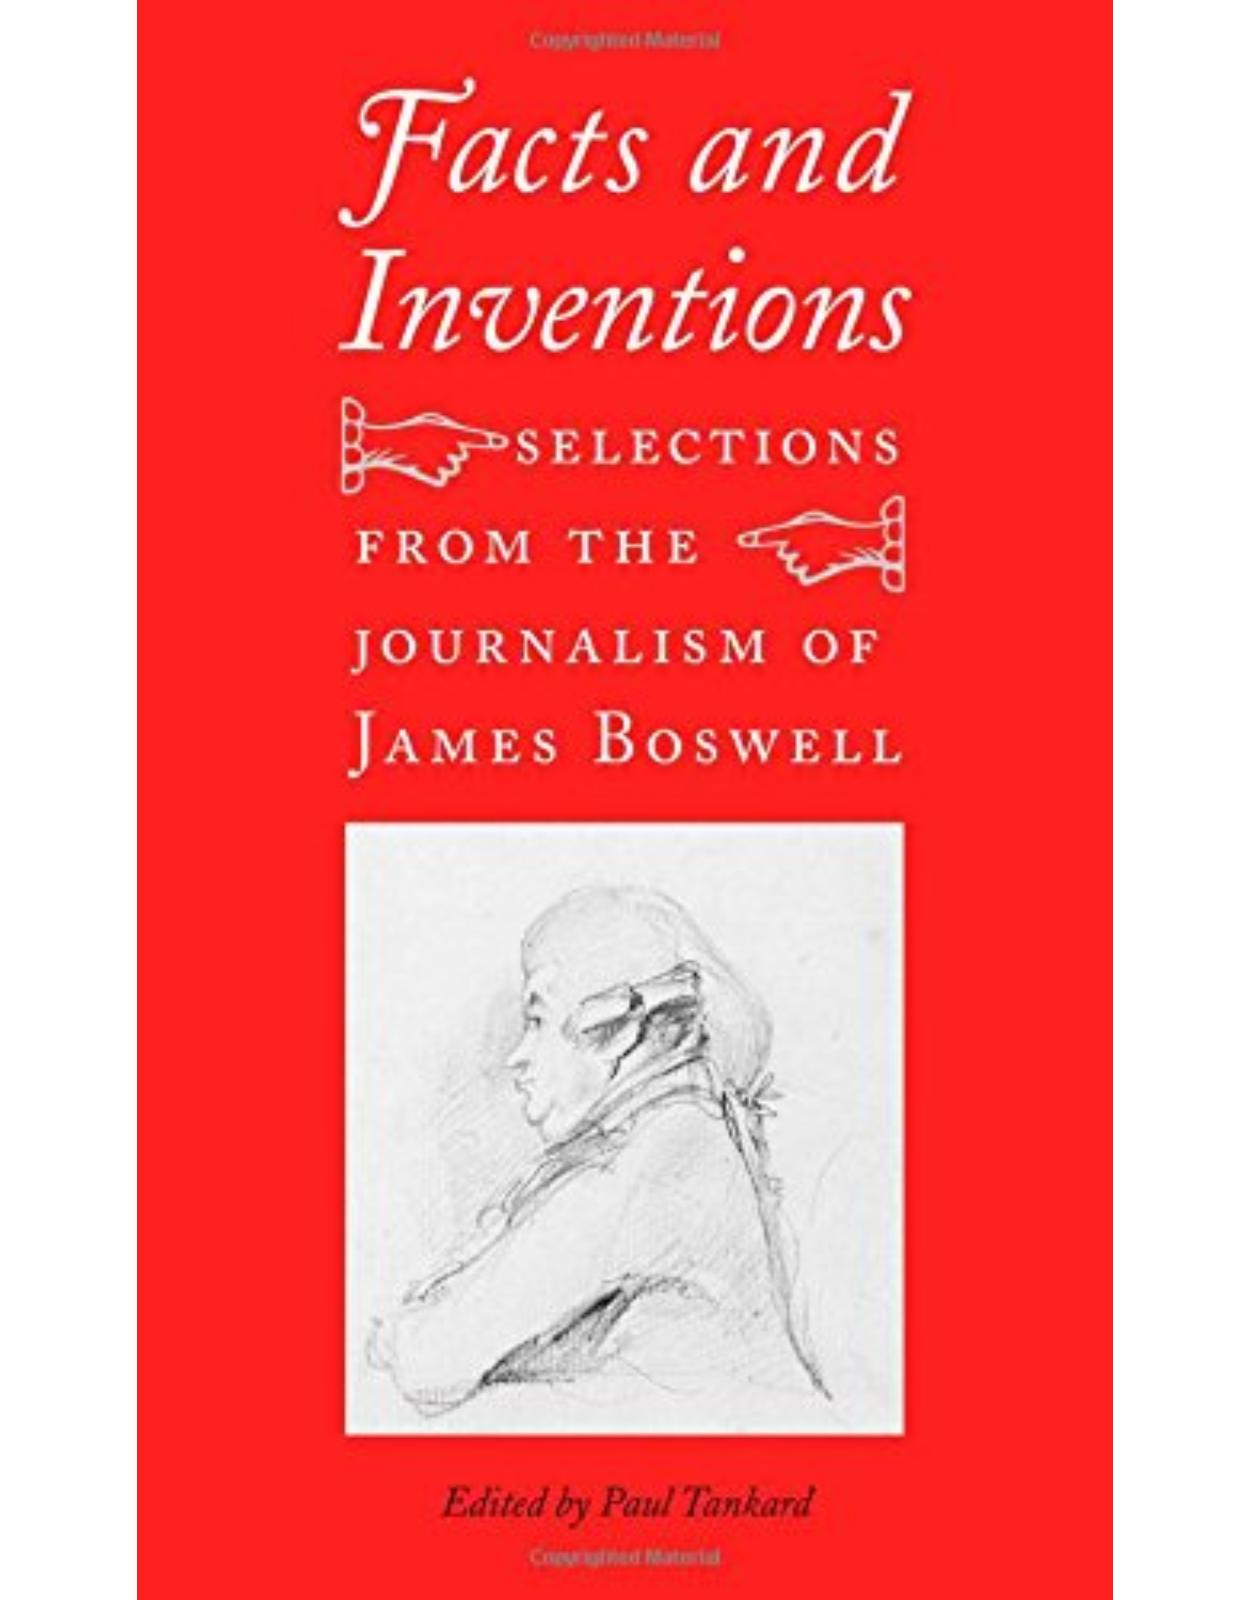 Facts and Inventions. Selections from the Journalism of James Boswell